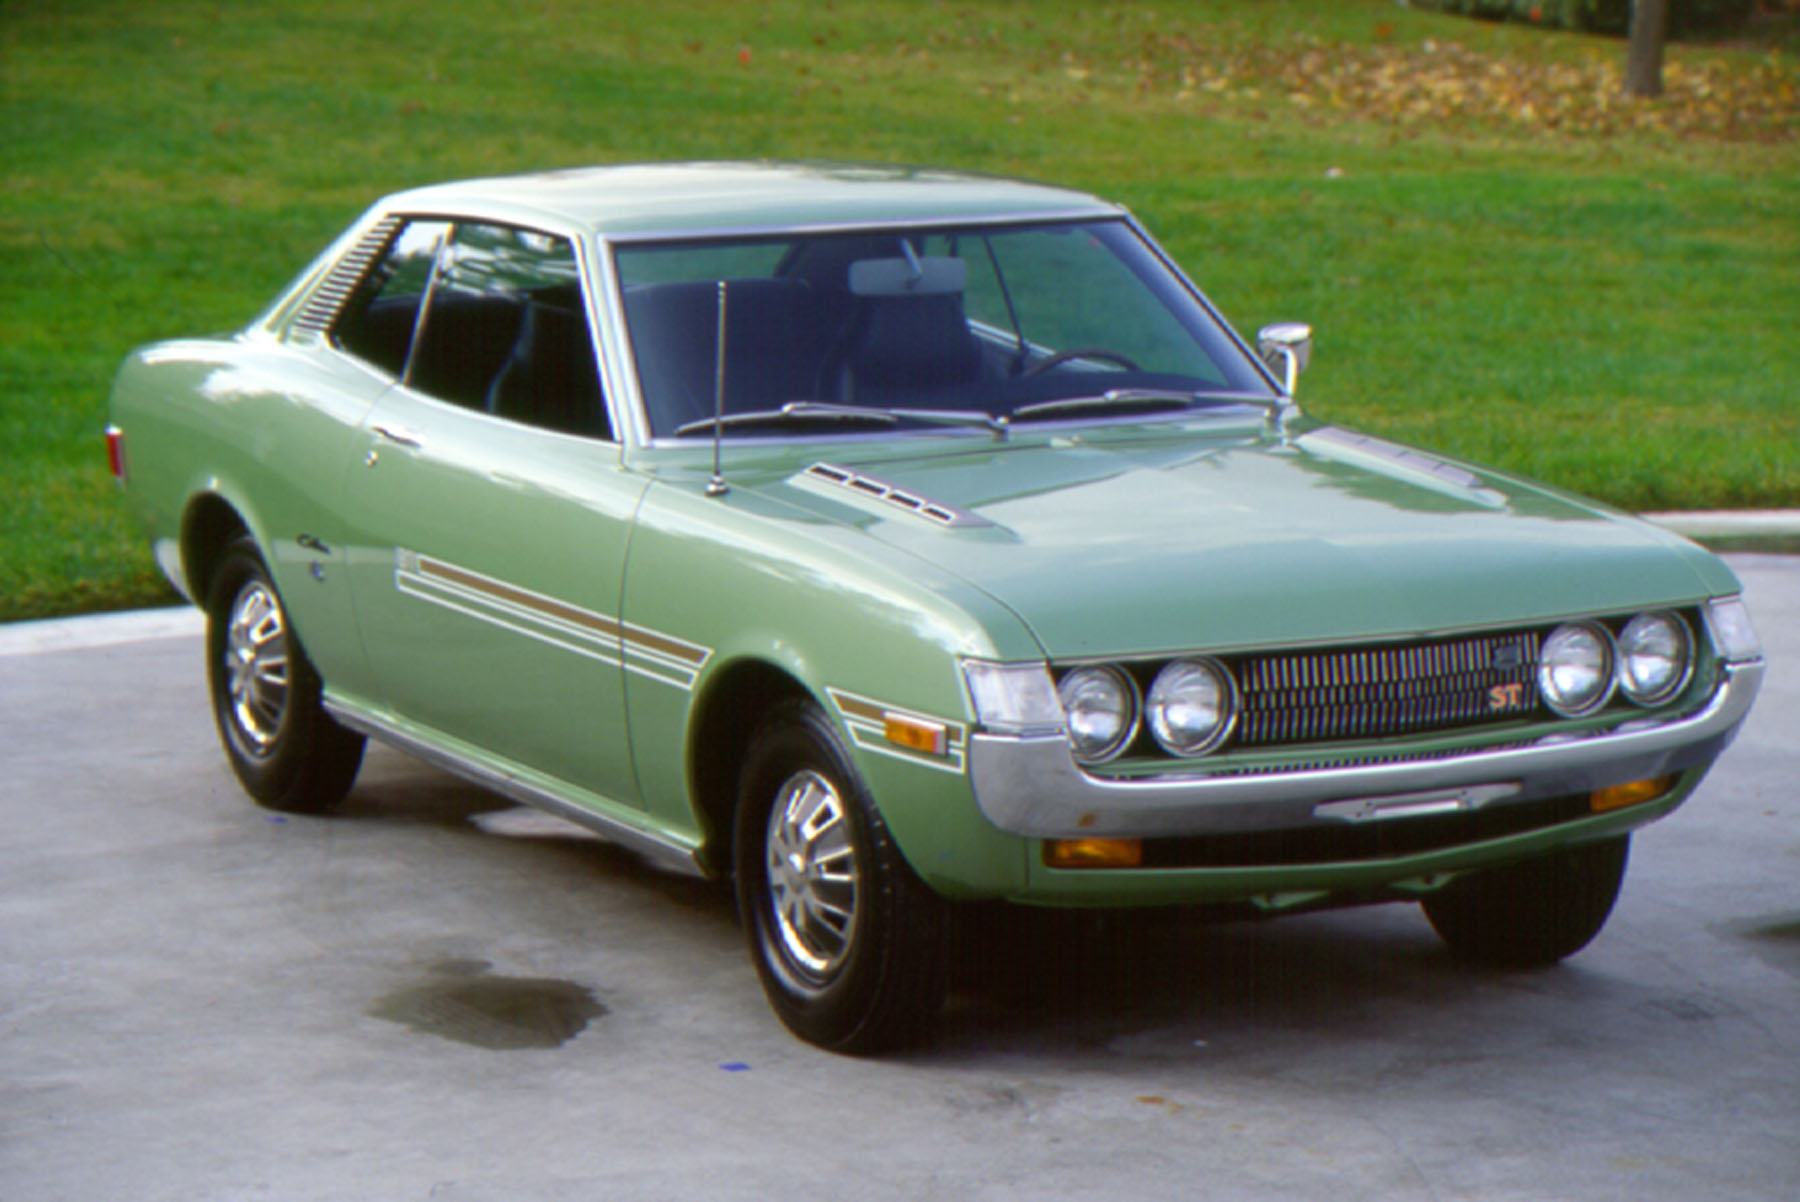 2015 Toyota Celica >> [WATCH] 1971 Toyota Celica ST Features in Jay Leno's Garage - The News Wheel